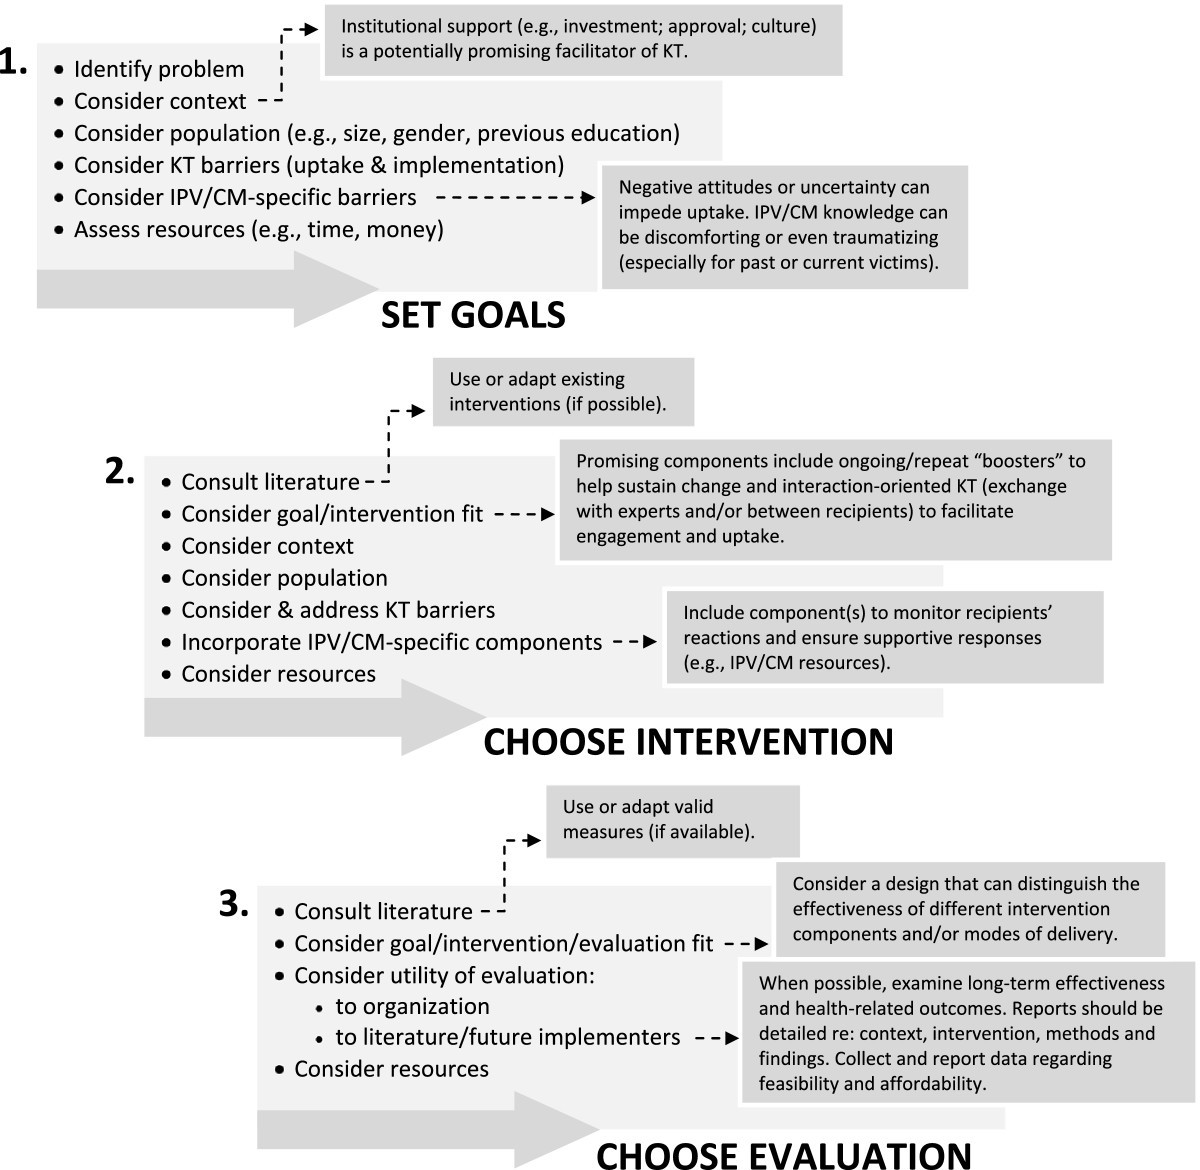 Strategies To Promote Uptake And Use Of Intimate Partner Violence